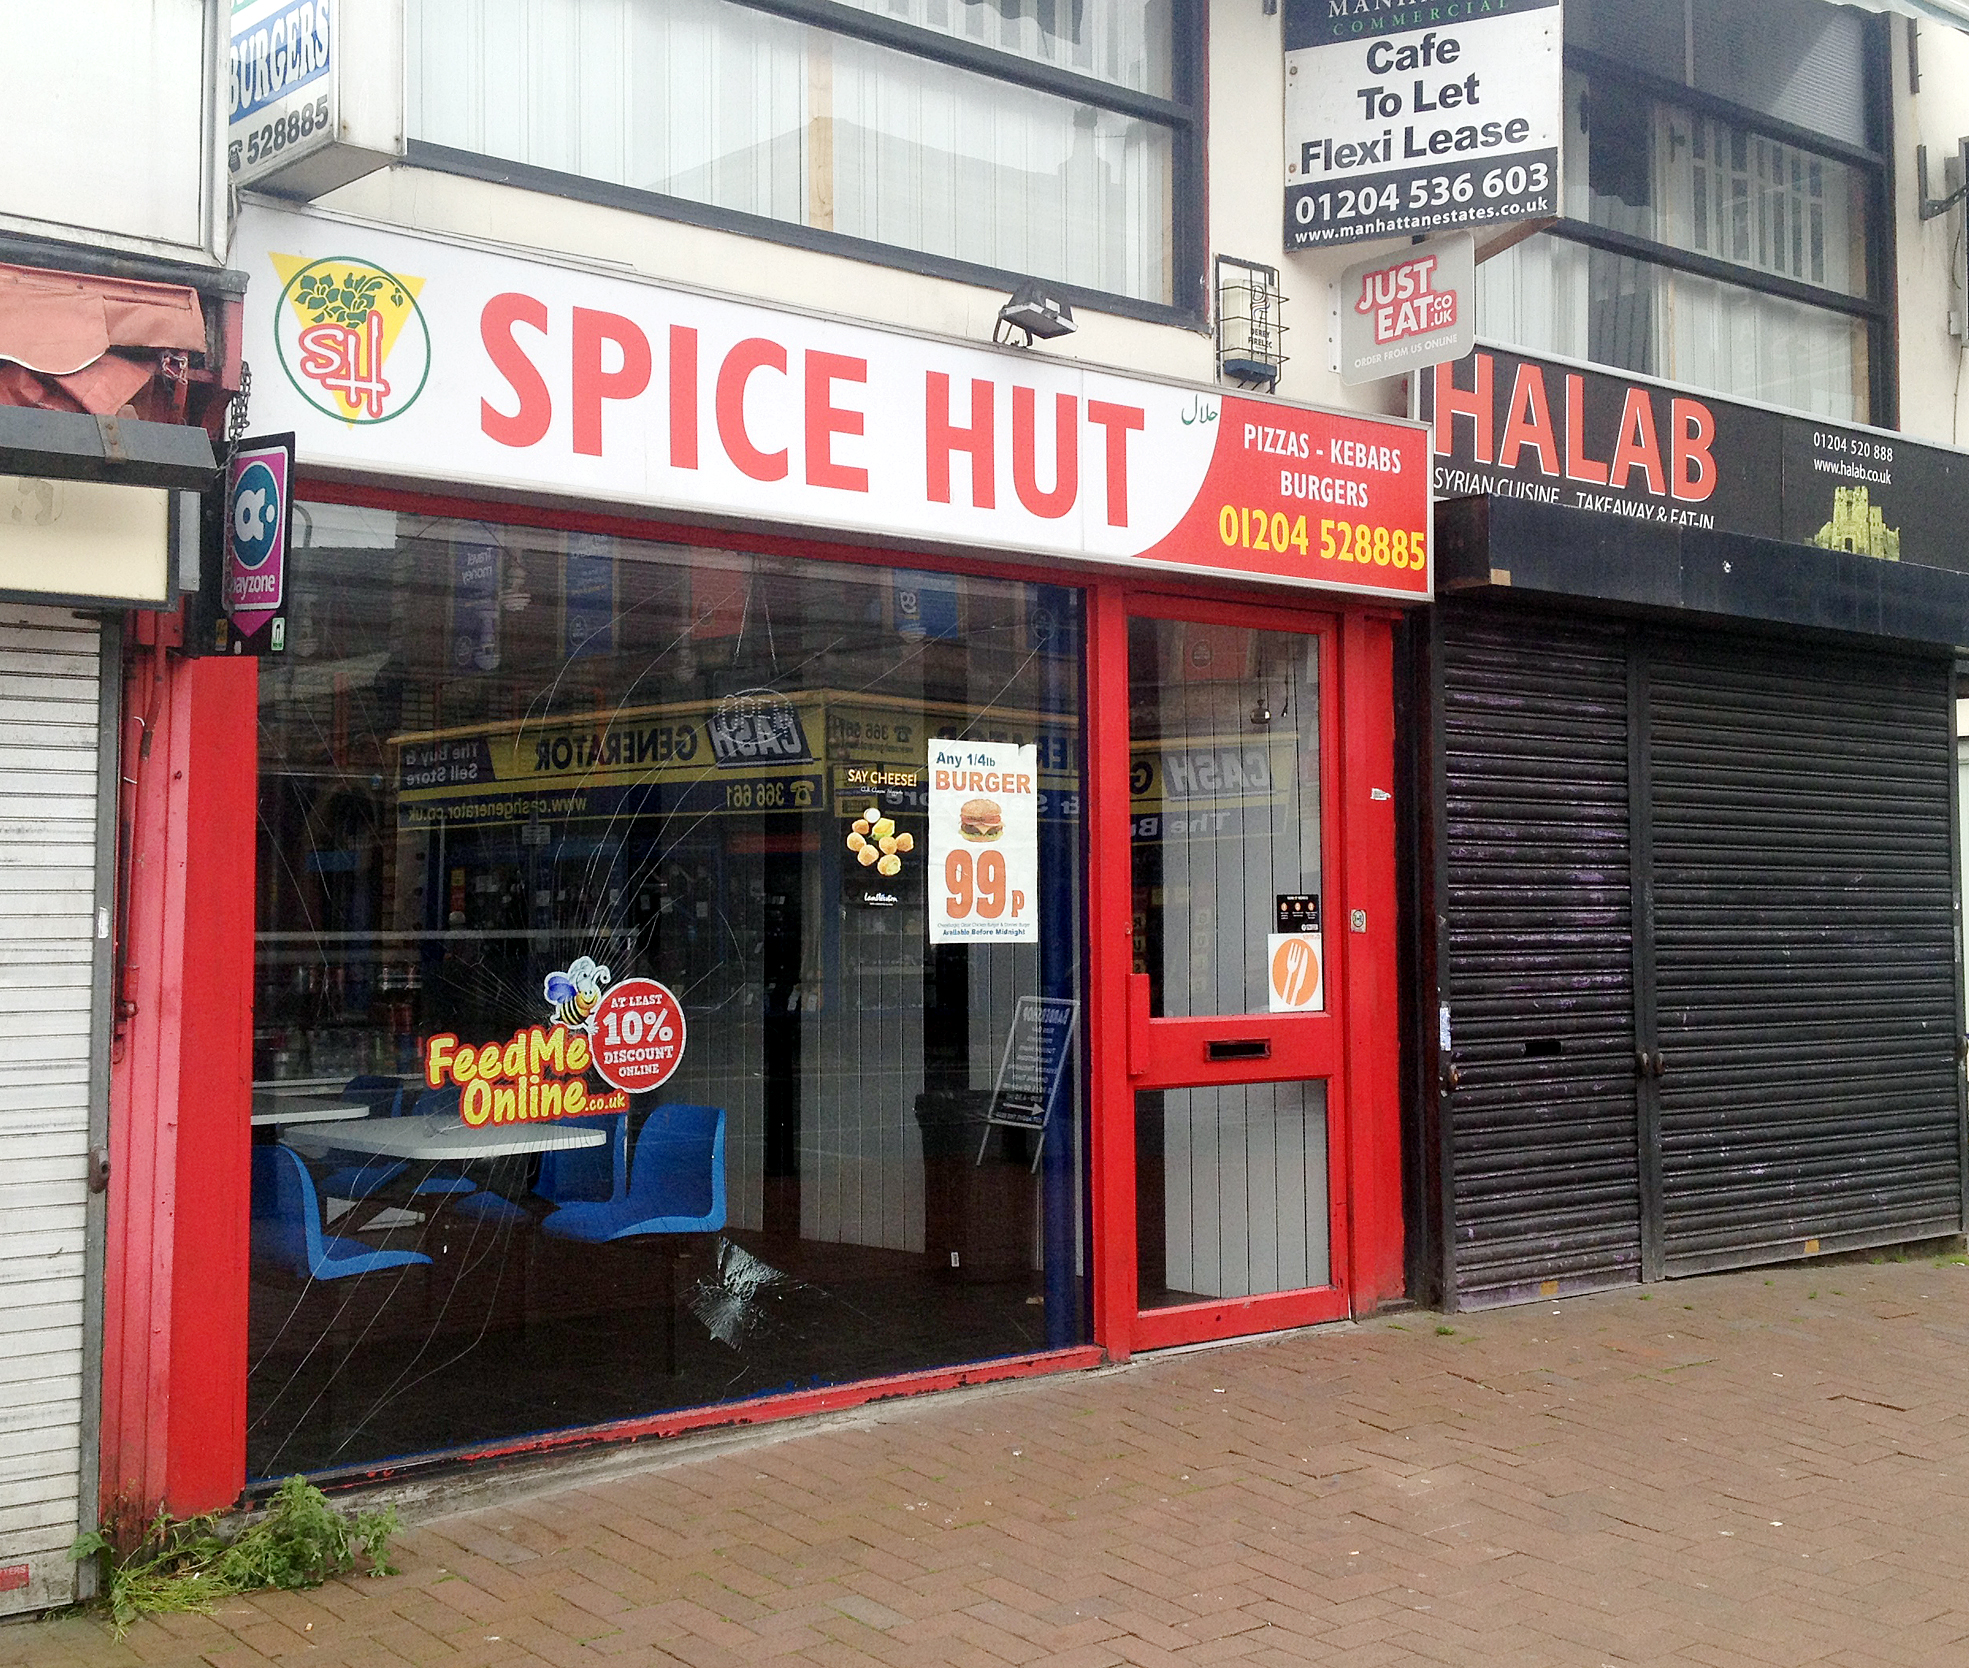 The town centre Spice Hut is under scrutiny